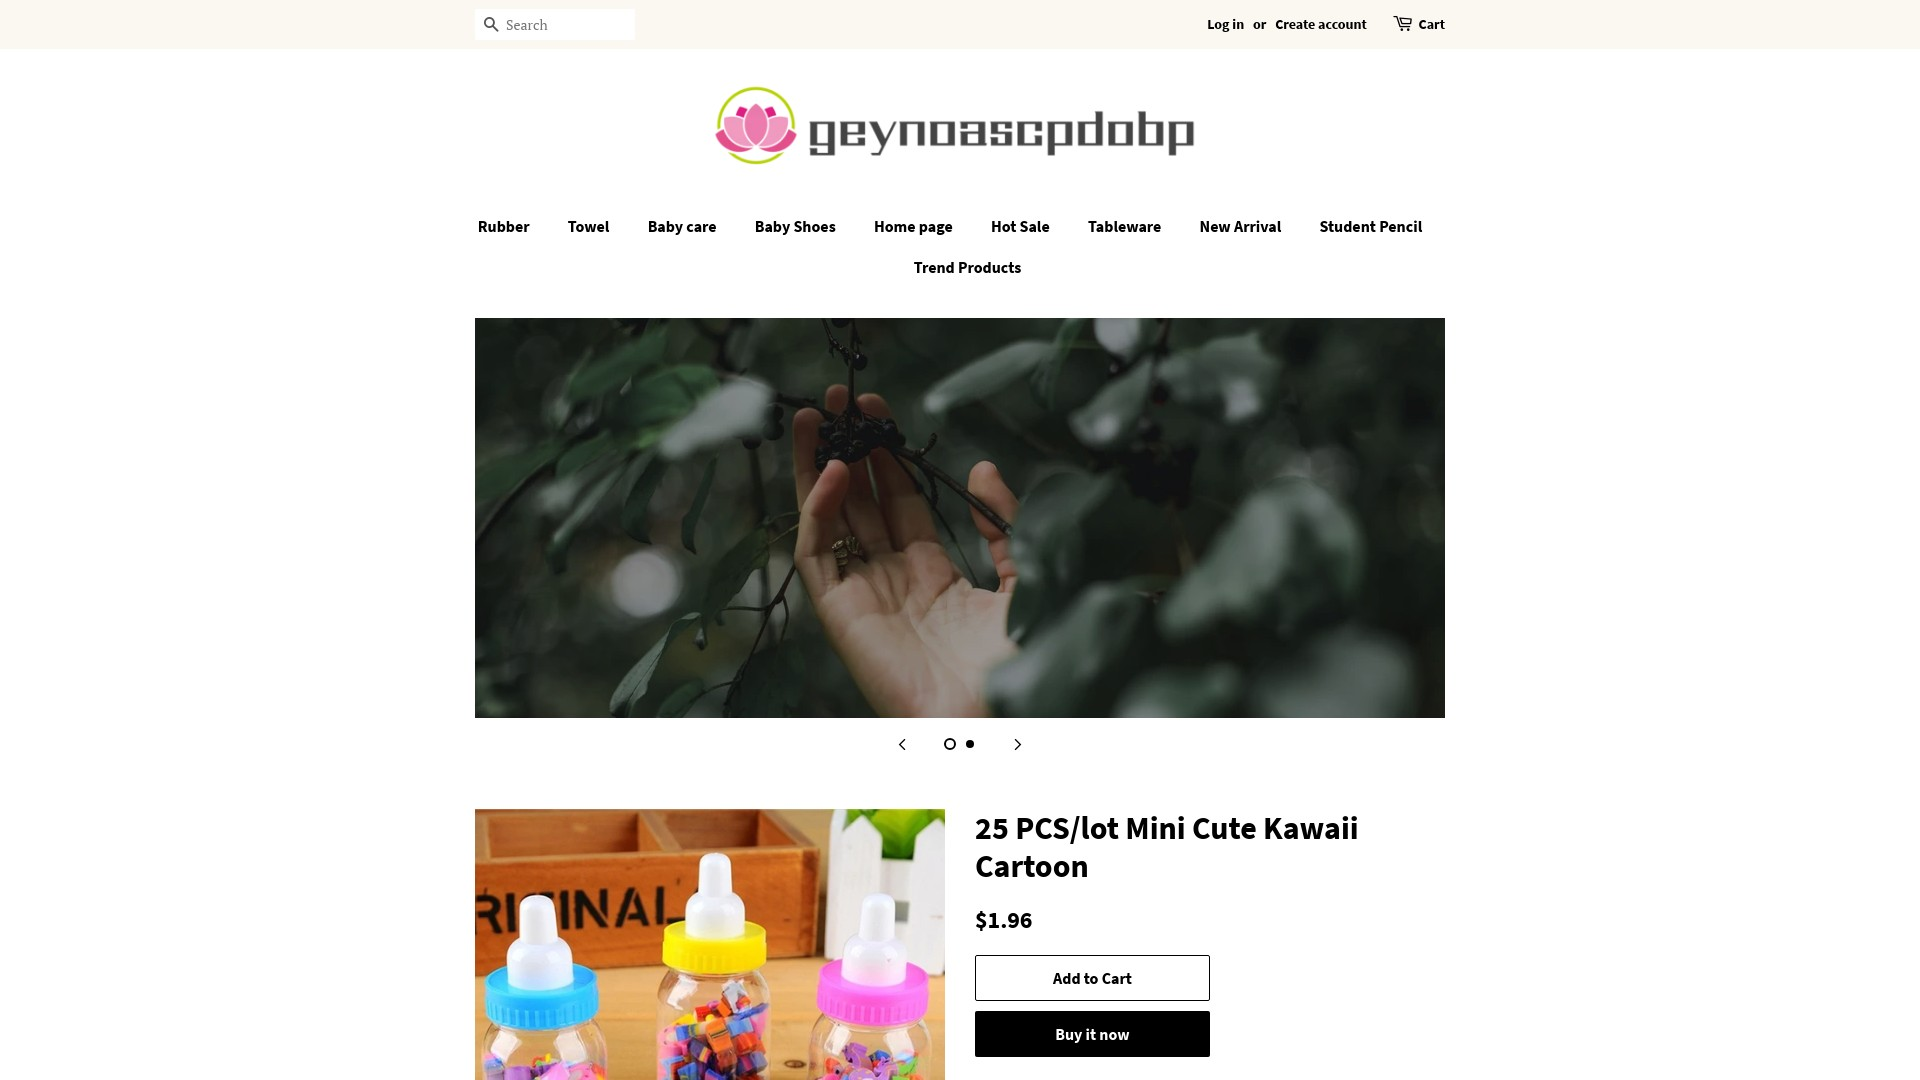 Is Geynoascpdobp a Scam? See the Review of the Online Store